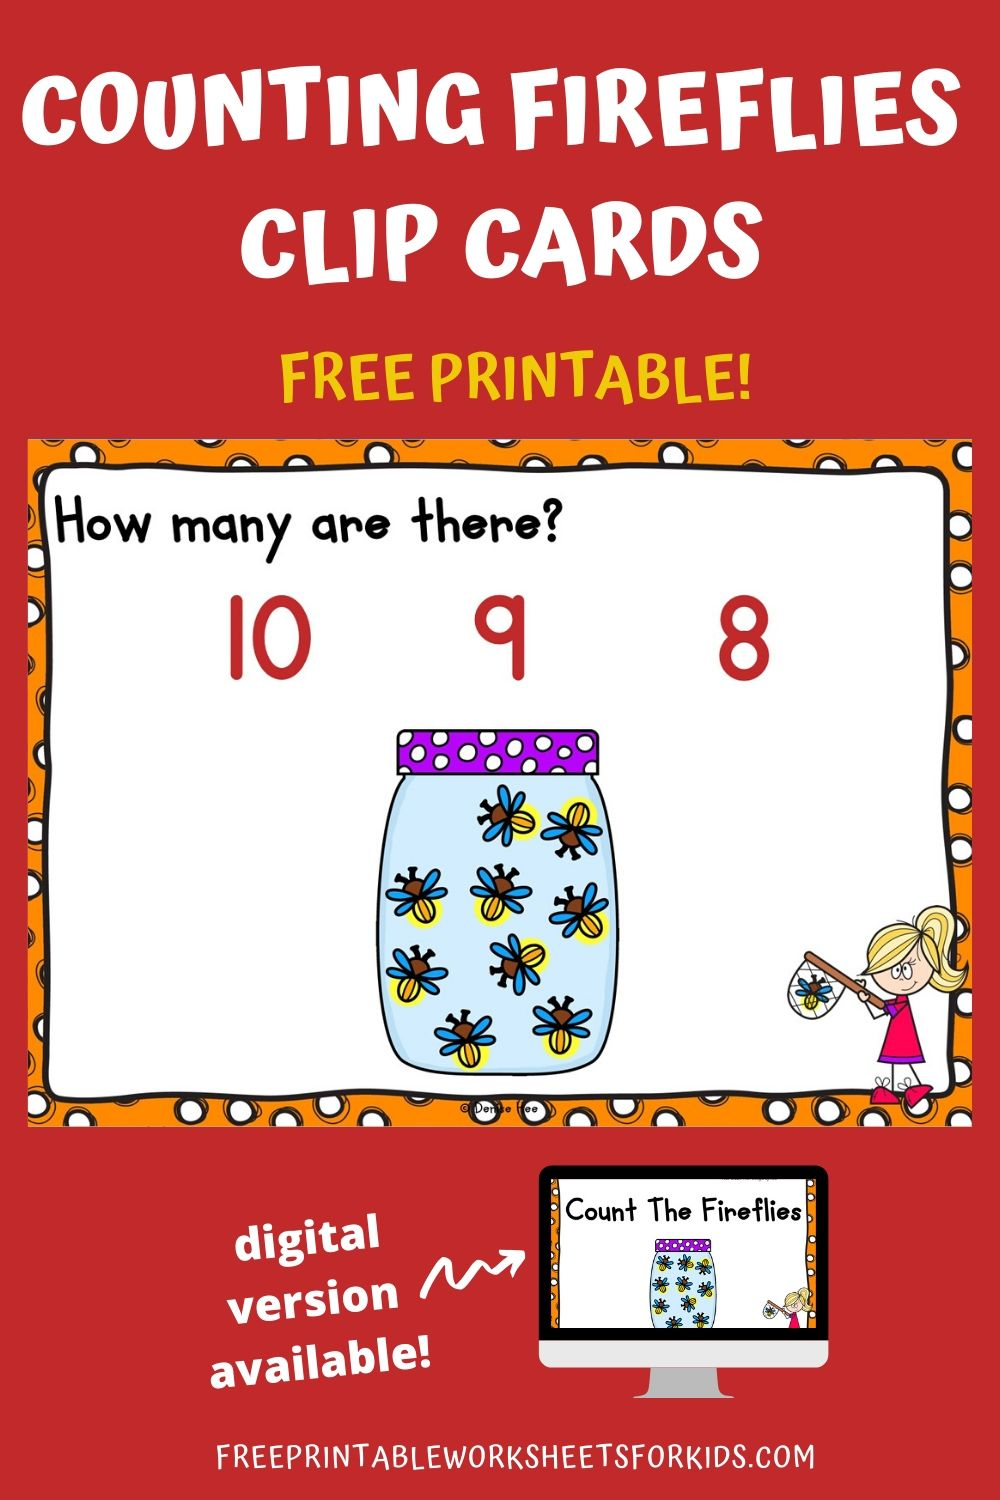 Count The Fireflies 1-10 | Free Printable Worksheets For Kids | This set of counting clip cards will light up your child's day! Count up to 10 fireflies caught in the jar. It's a perfect math and fine motor combination game for spring or summer.